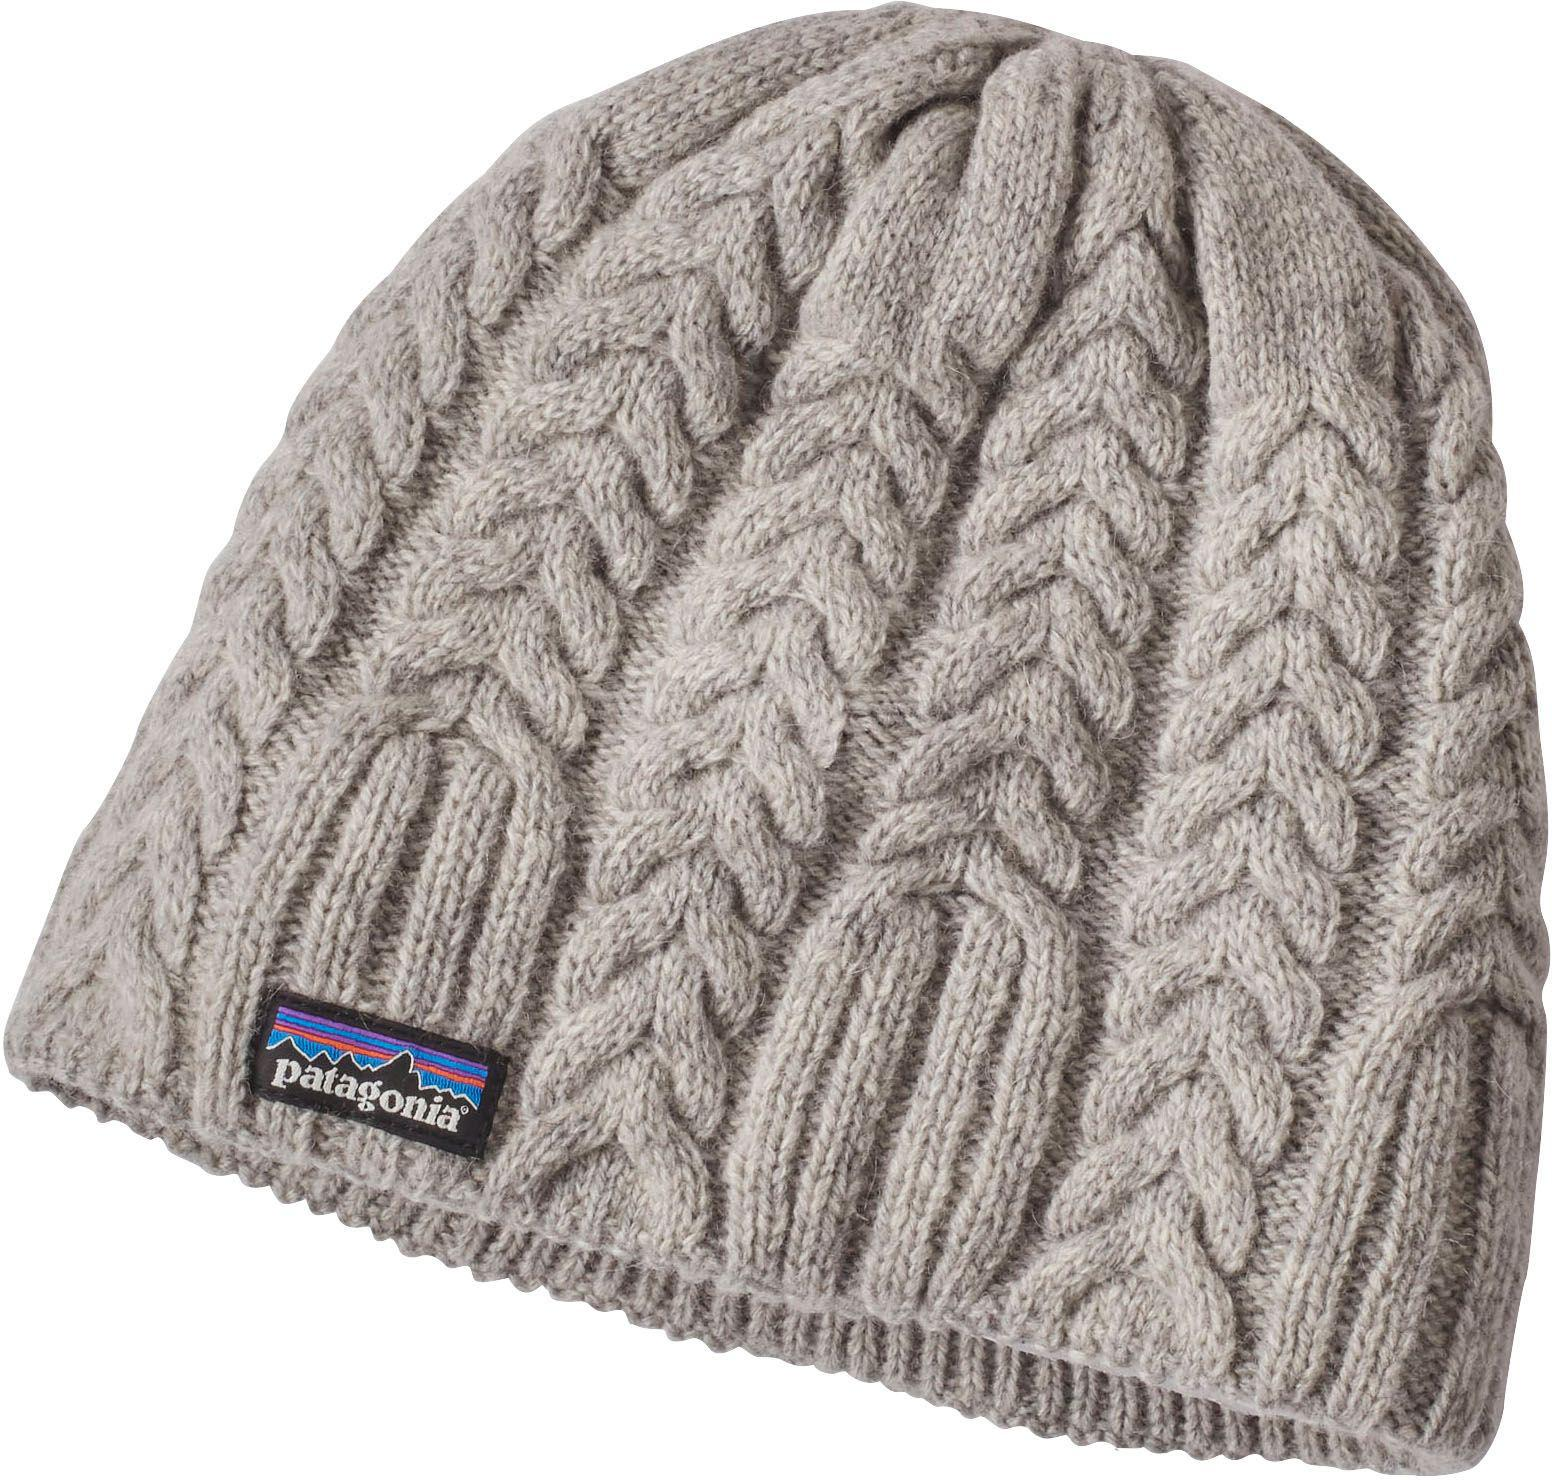 8a622521451 Patagonia - Gray Cable Beanie - Lyst. View fullscreen